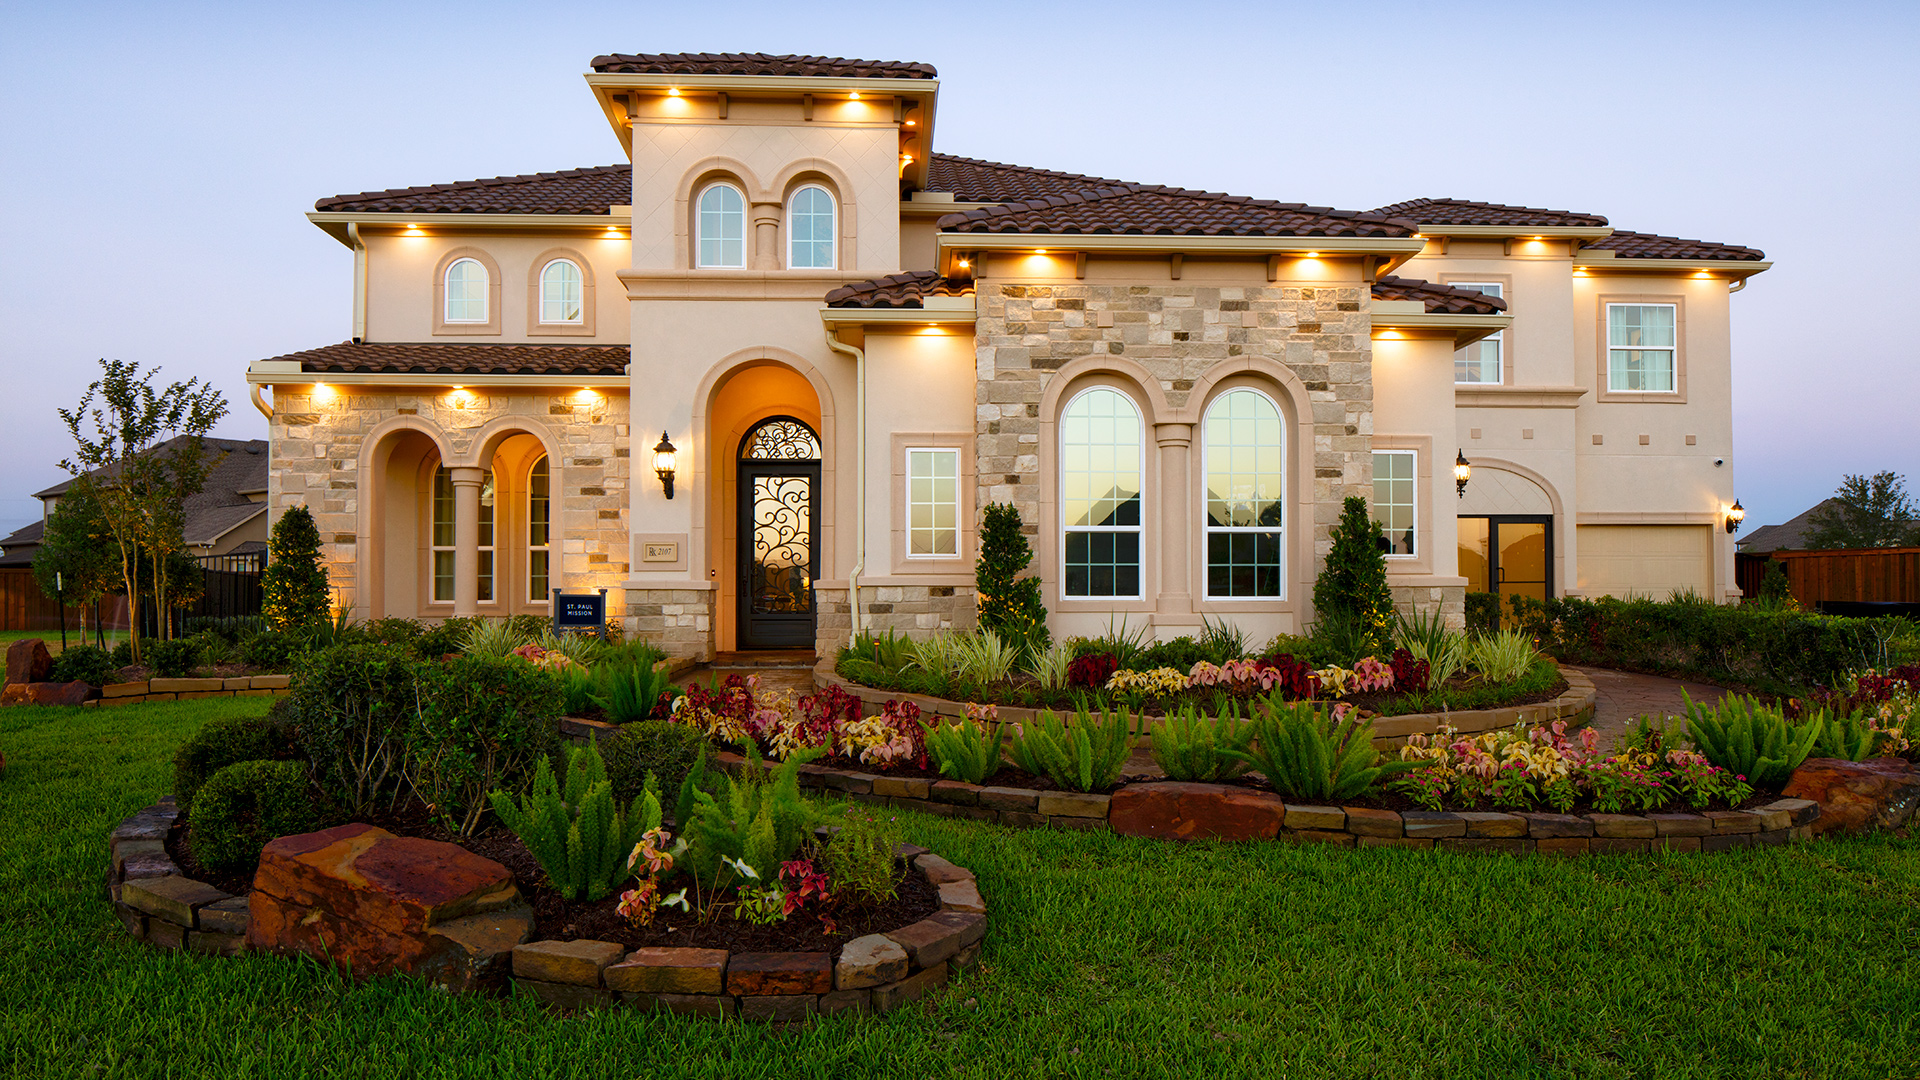 St. Paul Mission Model Home Now Open - Reserve at Katy - Katy, TX